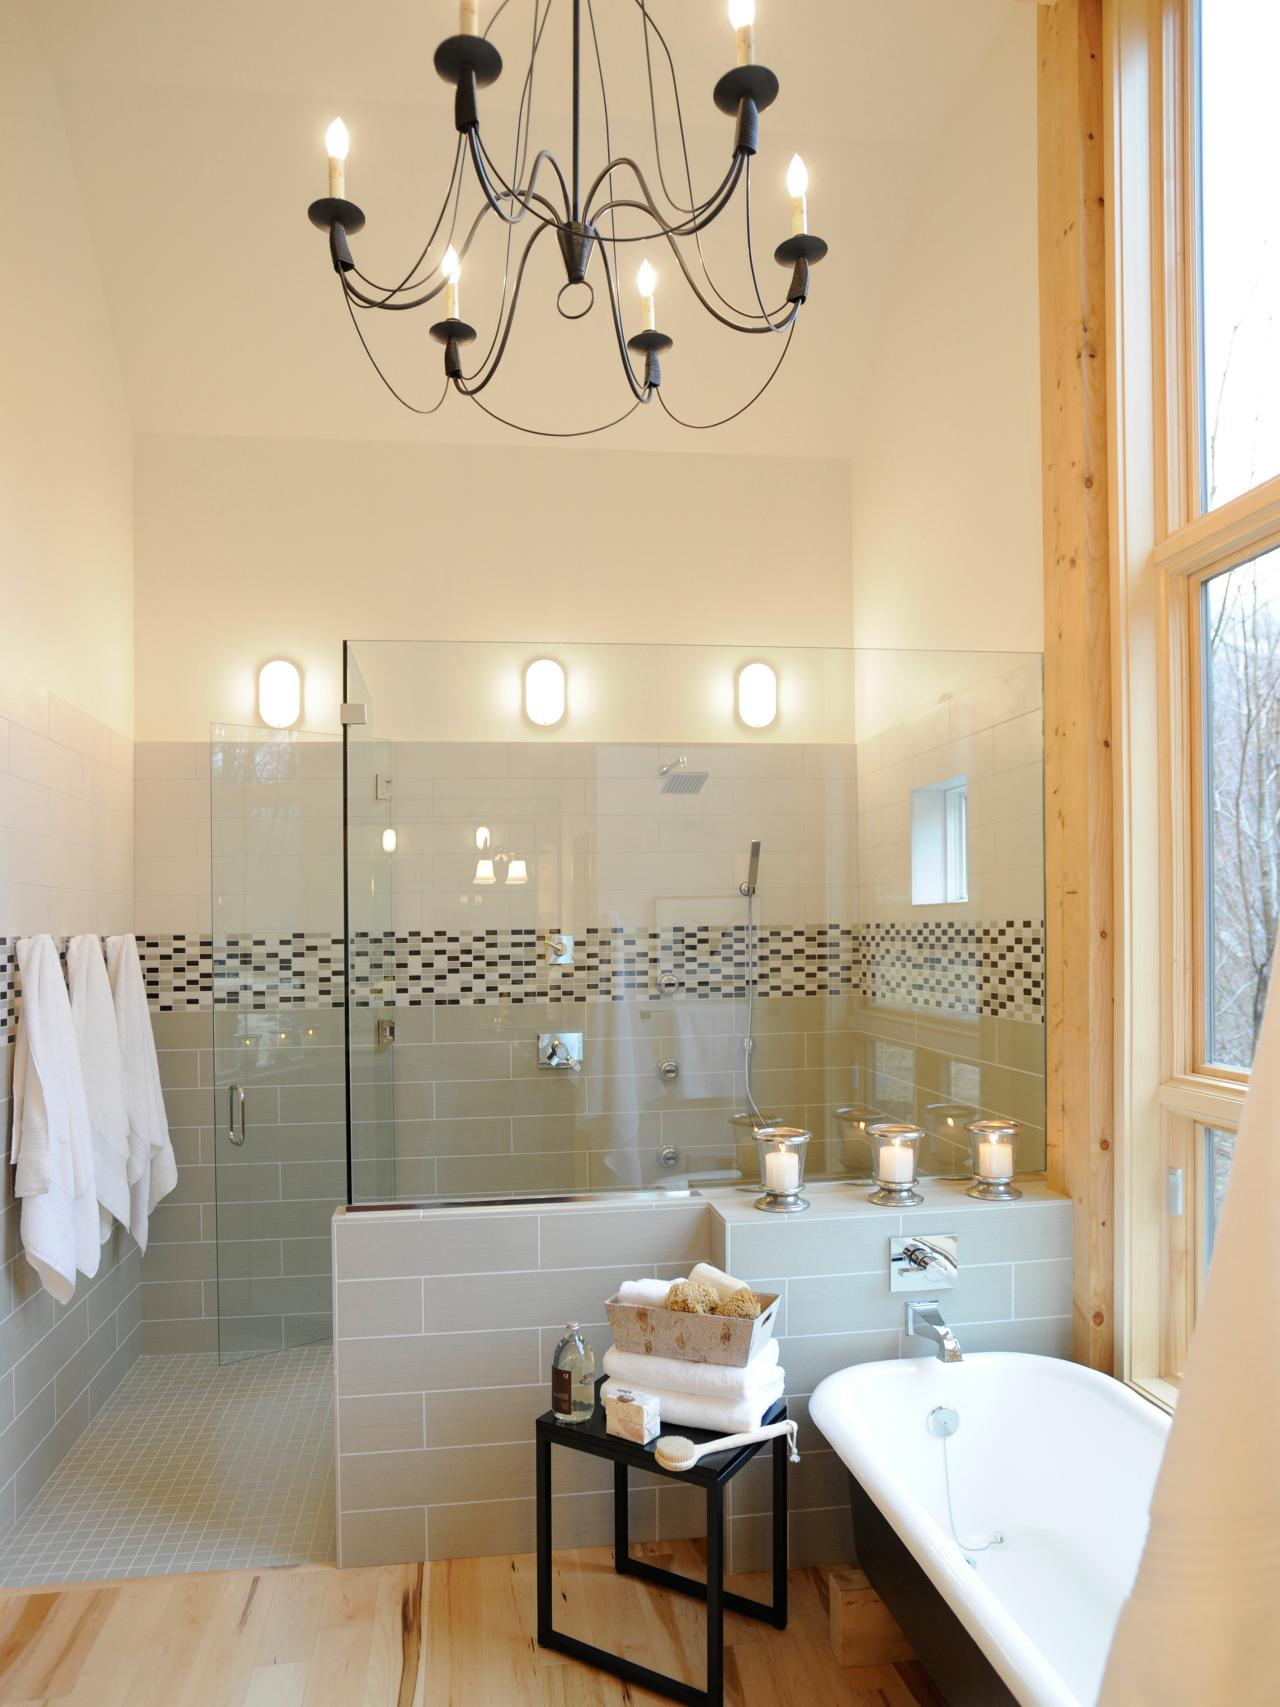 13 dreamy bathroom lighting ideas bathroom ideas